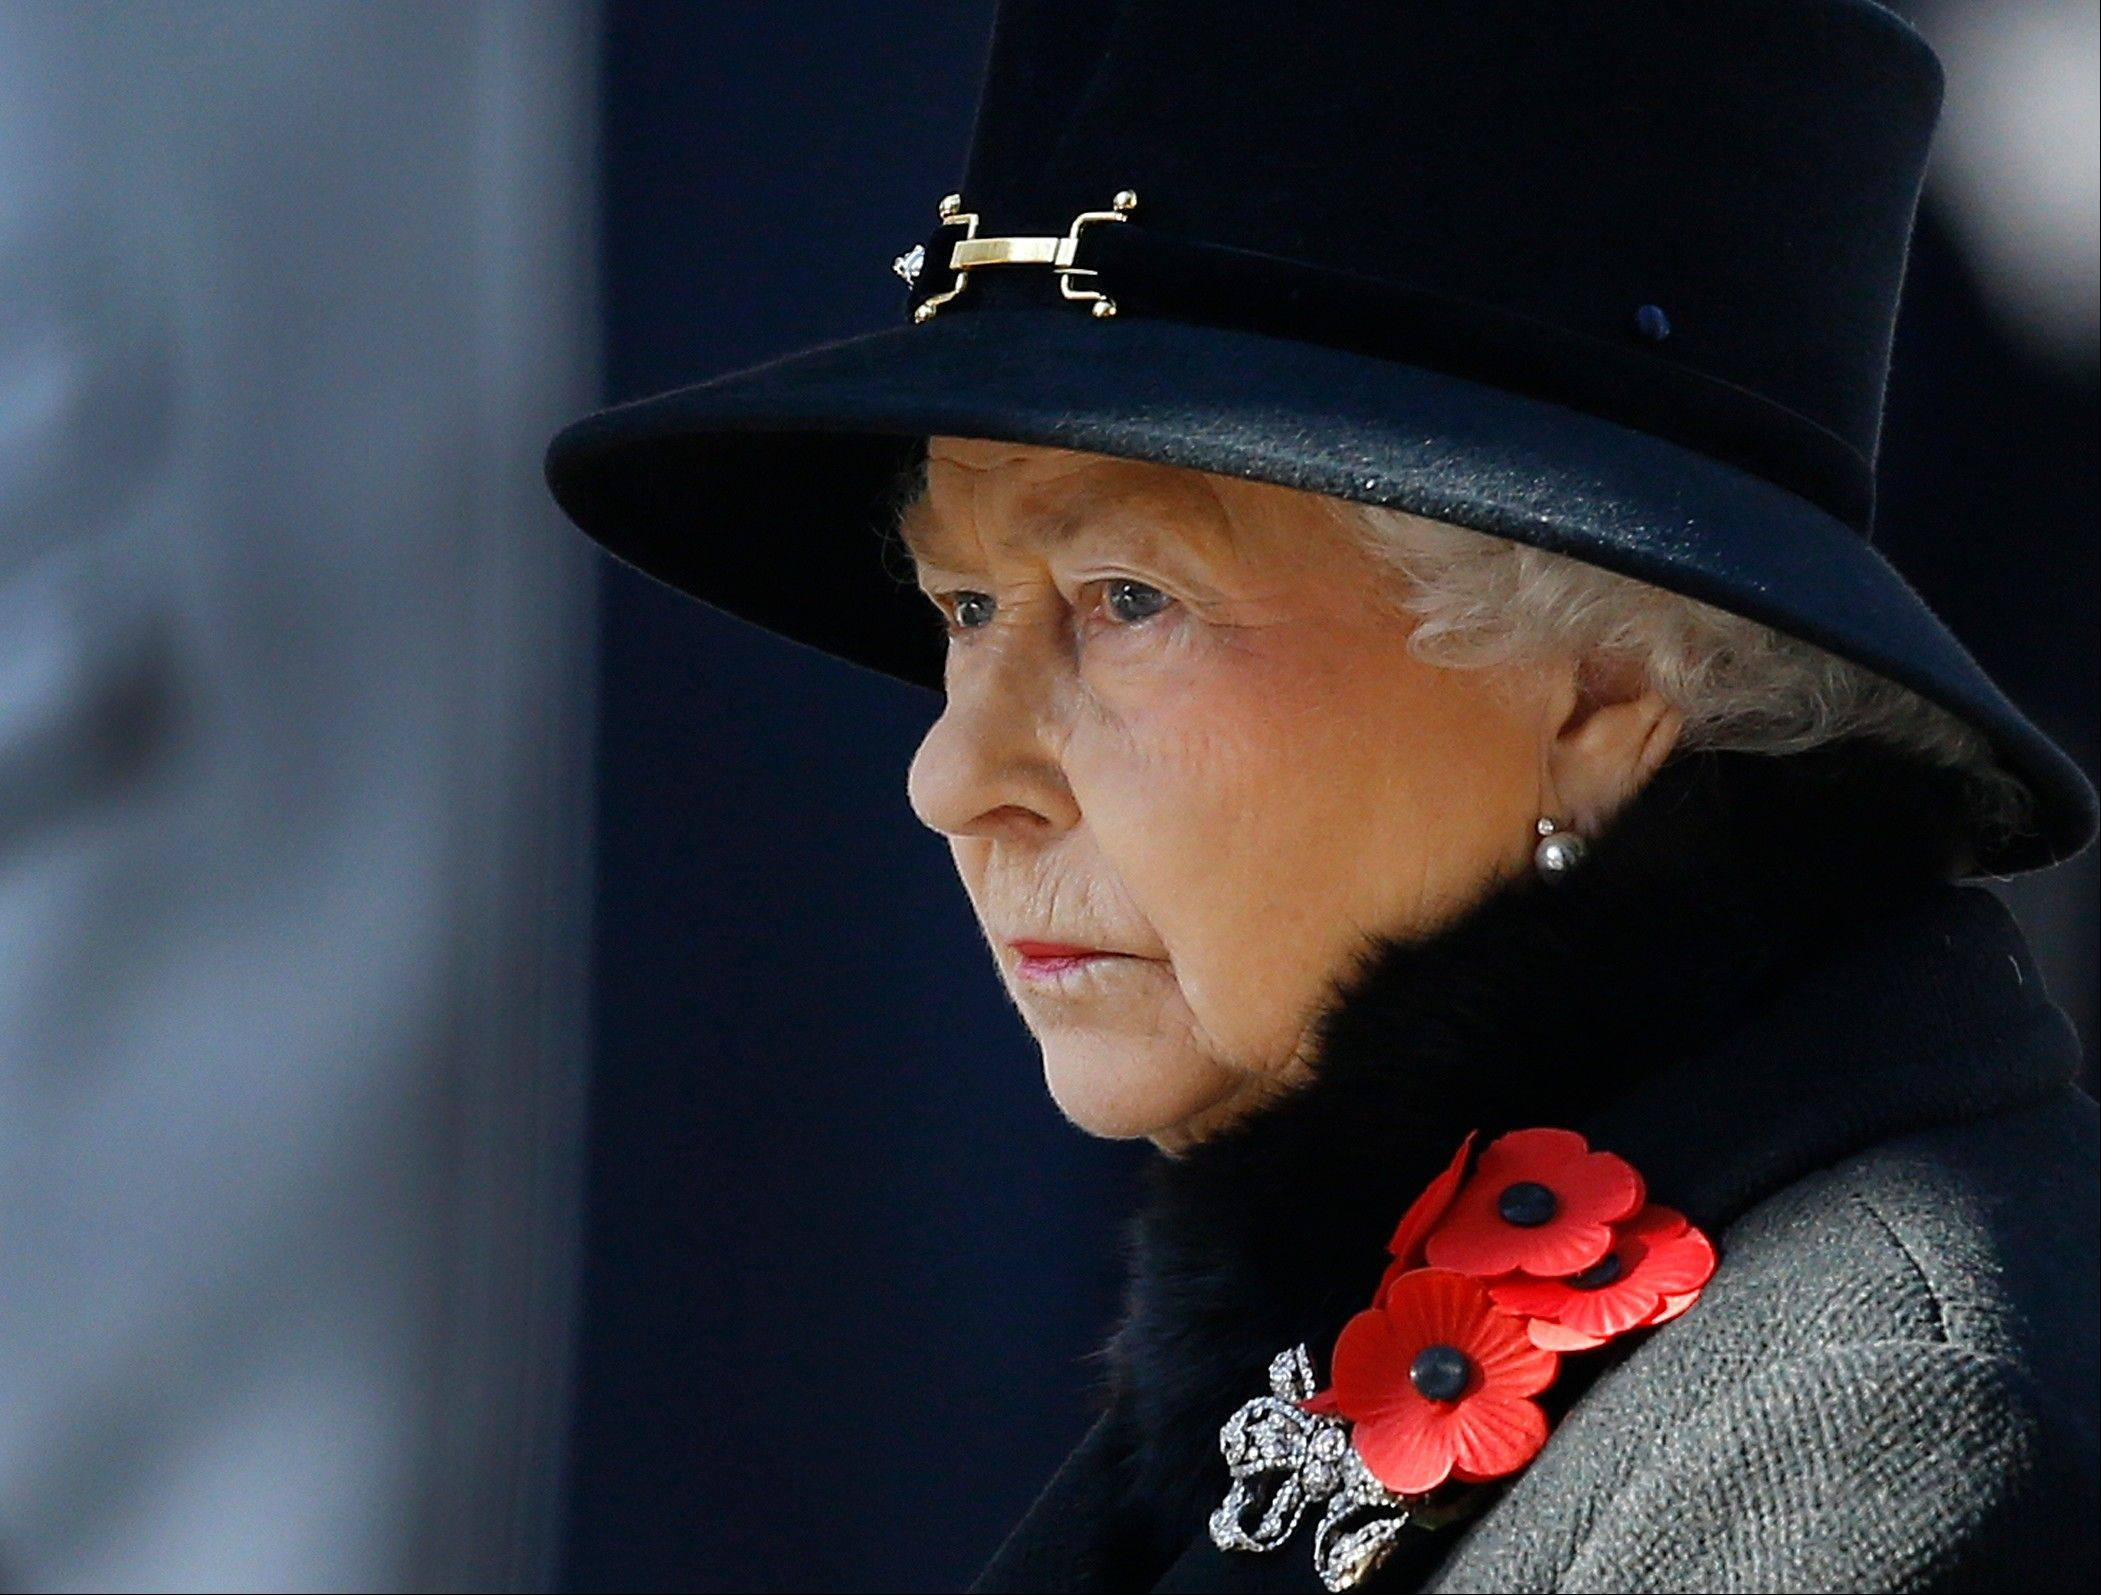 A monarch's life is not all luxury and glamour. A report by British lawmakers into the finances of Queen Elizabeth II has exposed crumbling palaces and depleted coffers, and discovered that a royal reserve fund for emergencies is down to its last $1.6 million.